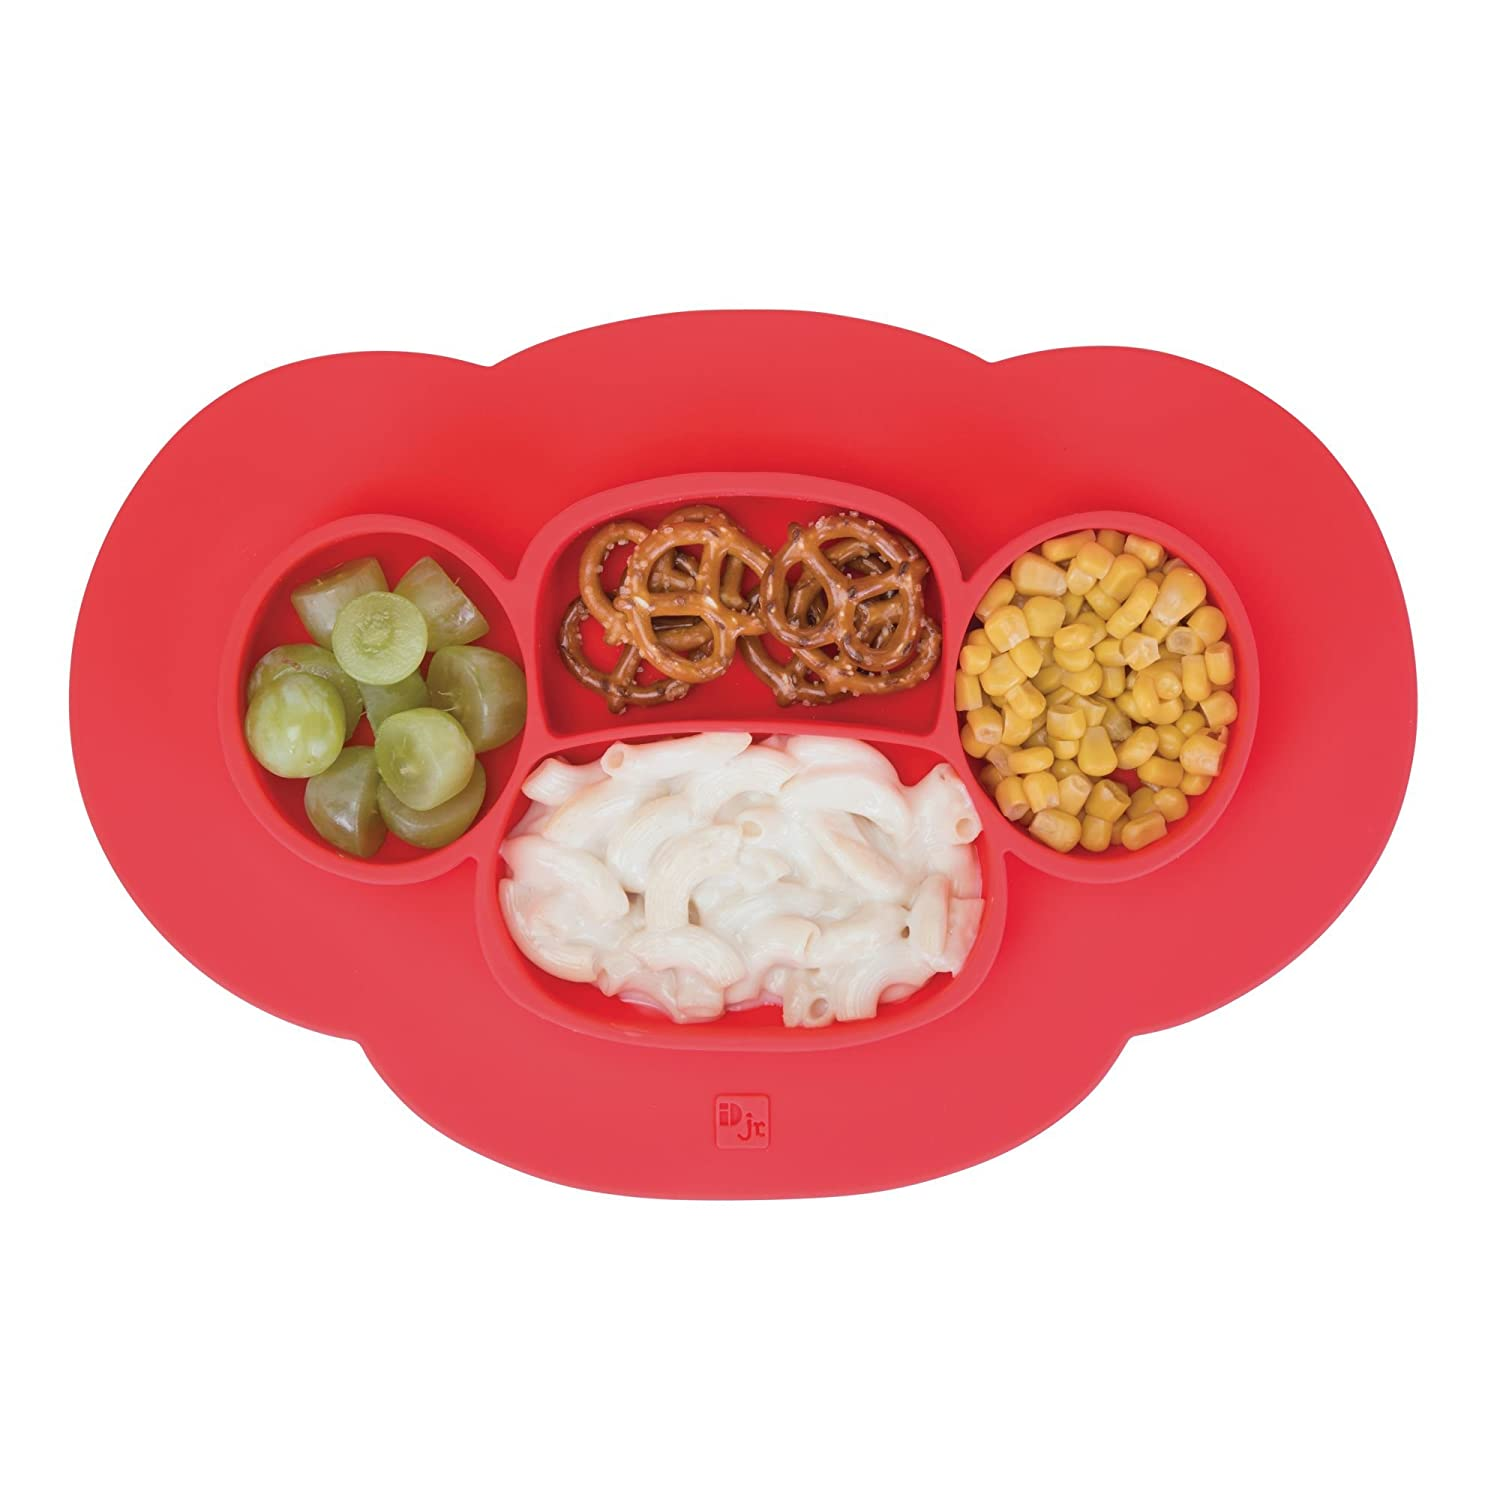 mDesign Silicone Mini Mealtime Plate and Placemat for Babies, Toddlers, Kids - BPA Free, Food Safe � Stays in Place � 4 Sections - Microwave and Dishwasher Safe, Fun Monkey Design, Teal Blue MetroDecor 01501MDB